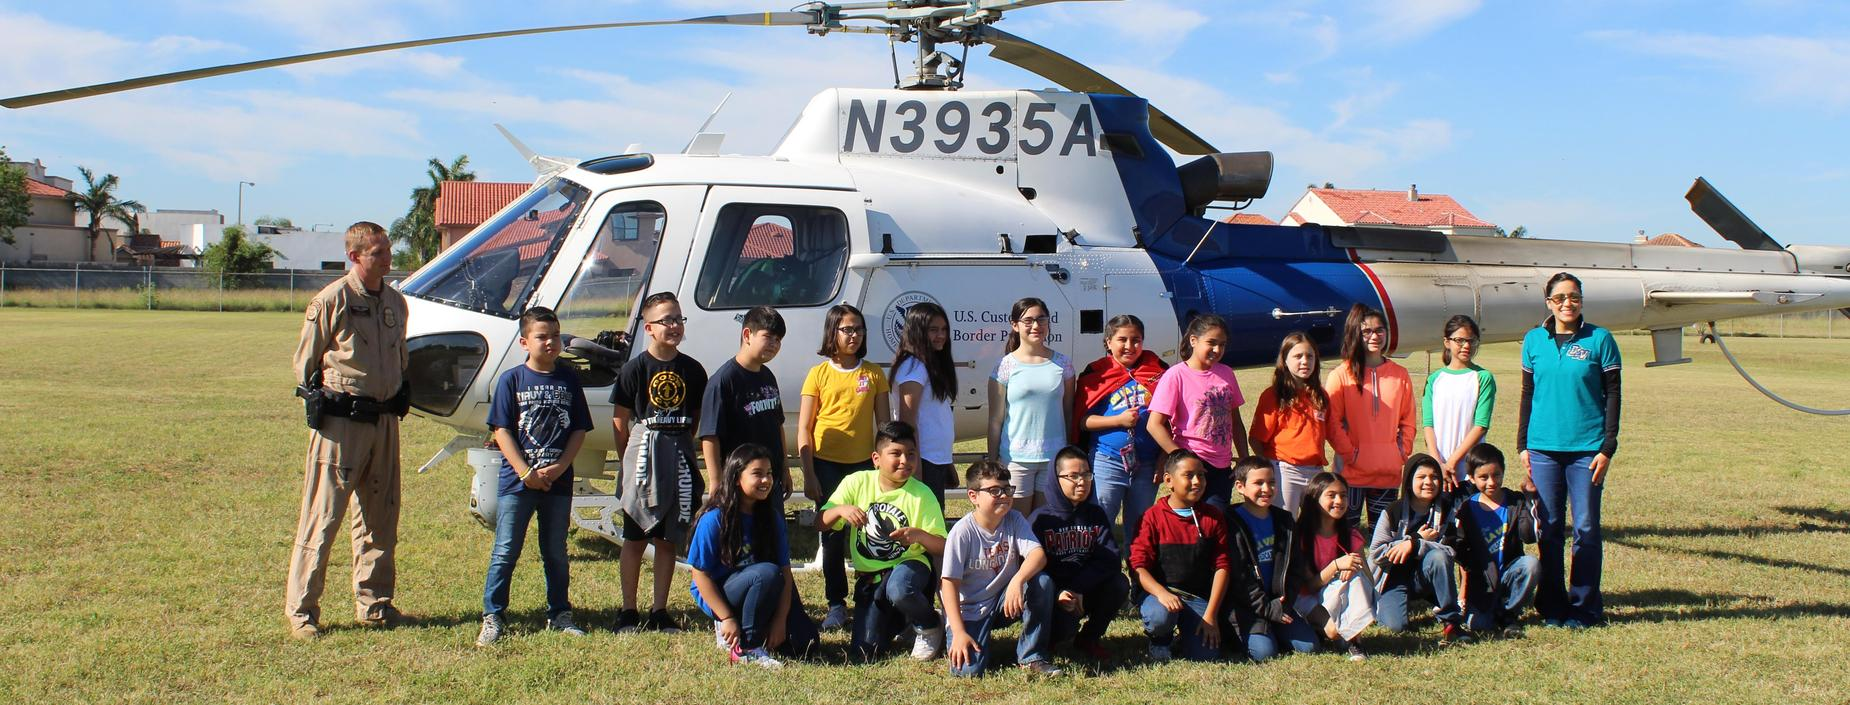 Ms. Caceres' 4th grade class posing with Customs helicopter on Career Day